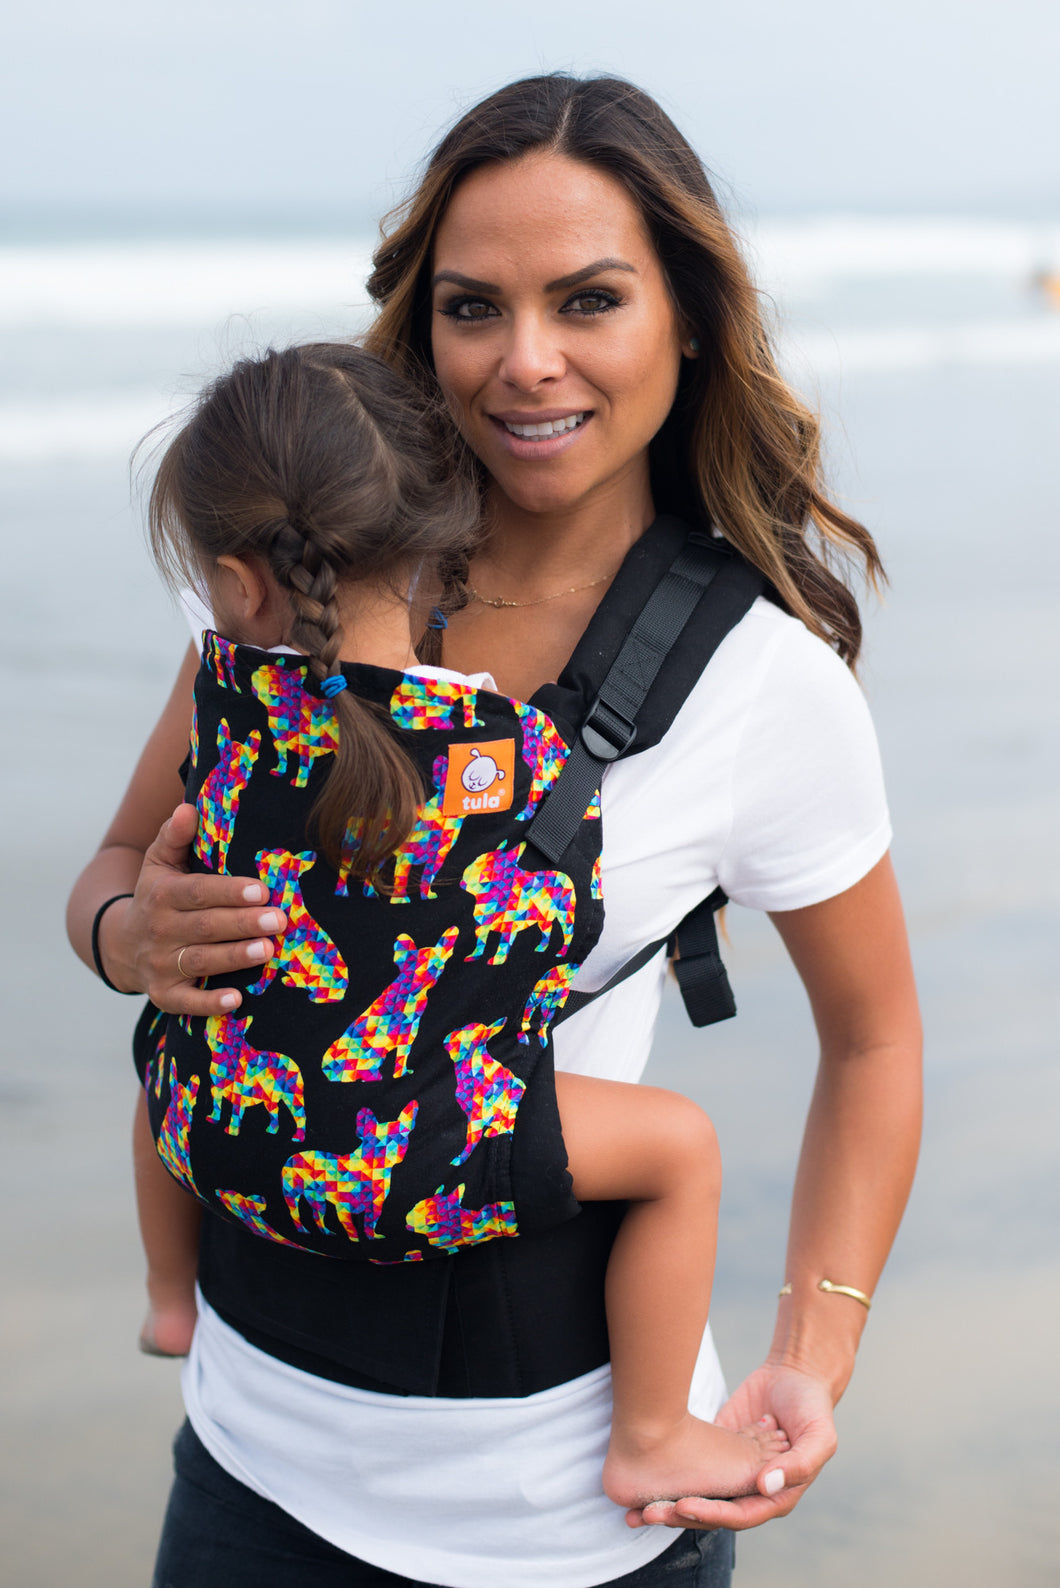 Puppy Love - Tula TODDLER Carrier - Baby Tula